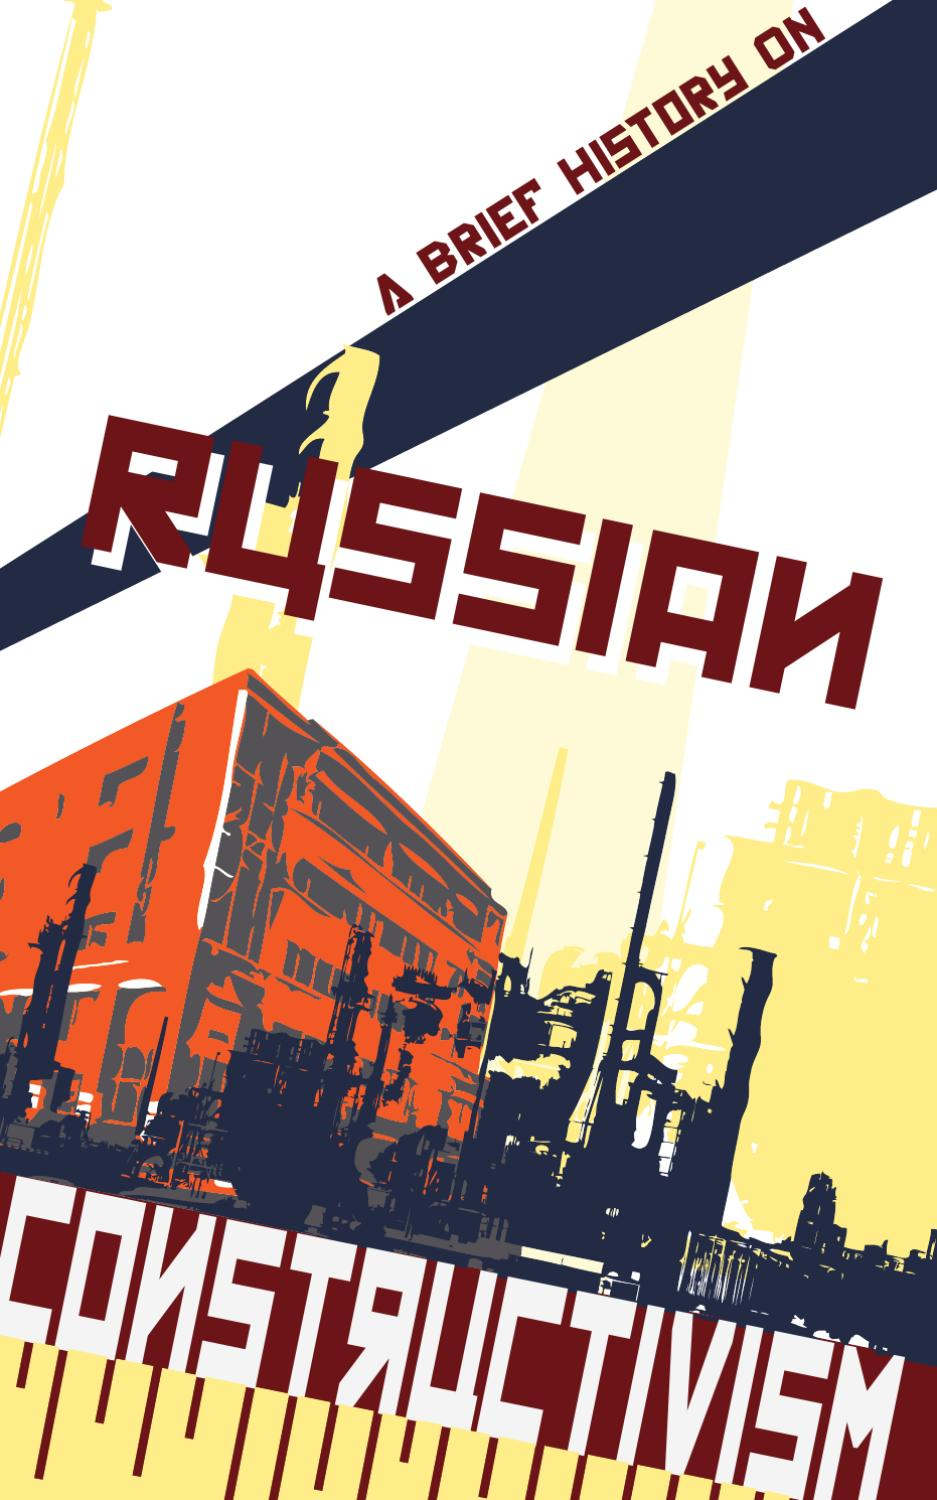 russian constructivism by eric louw